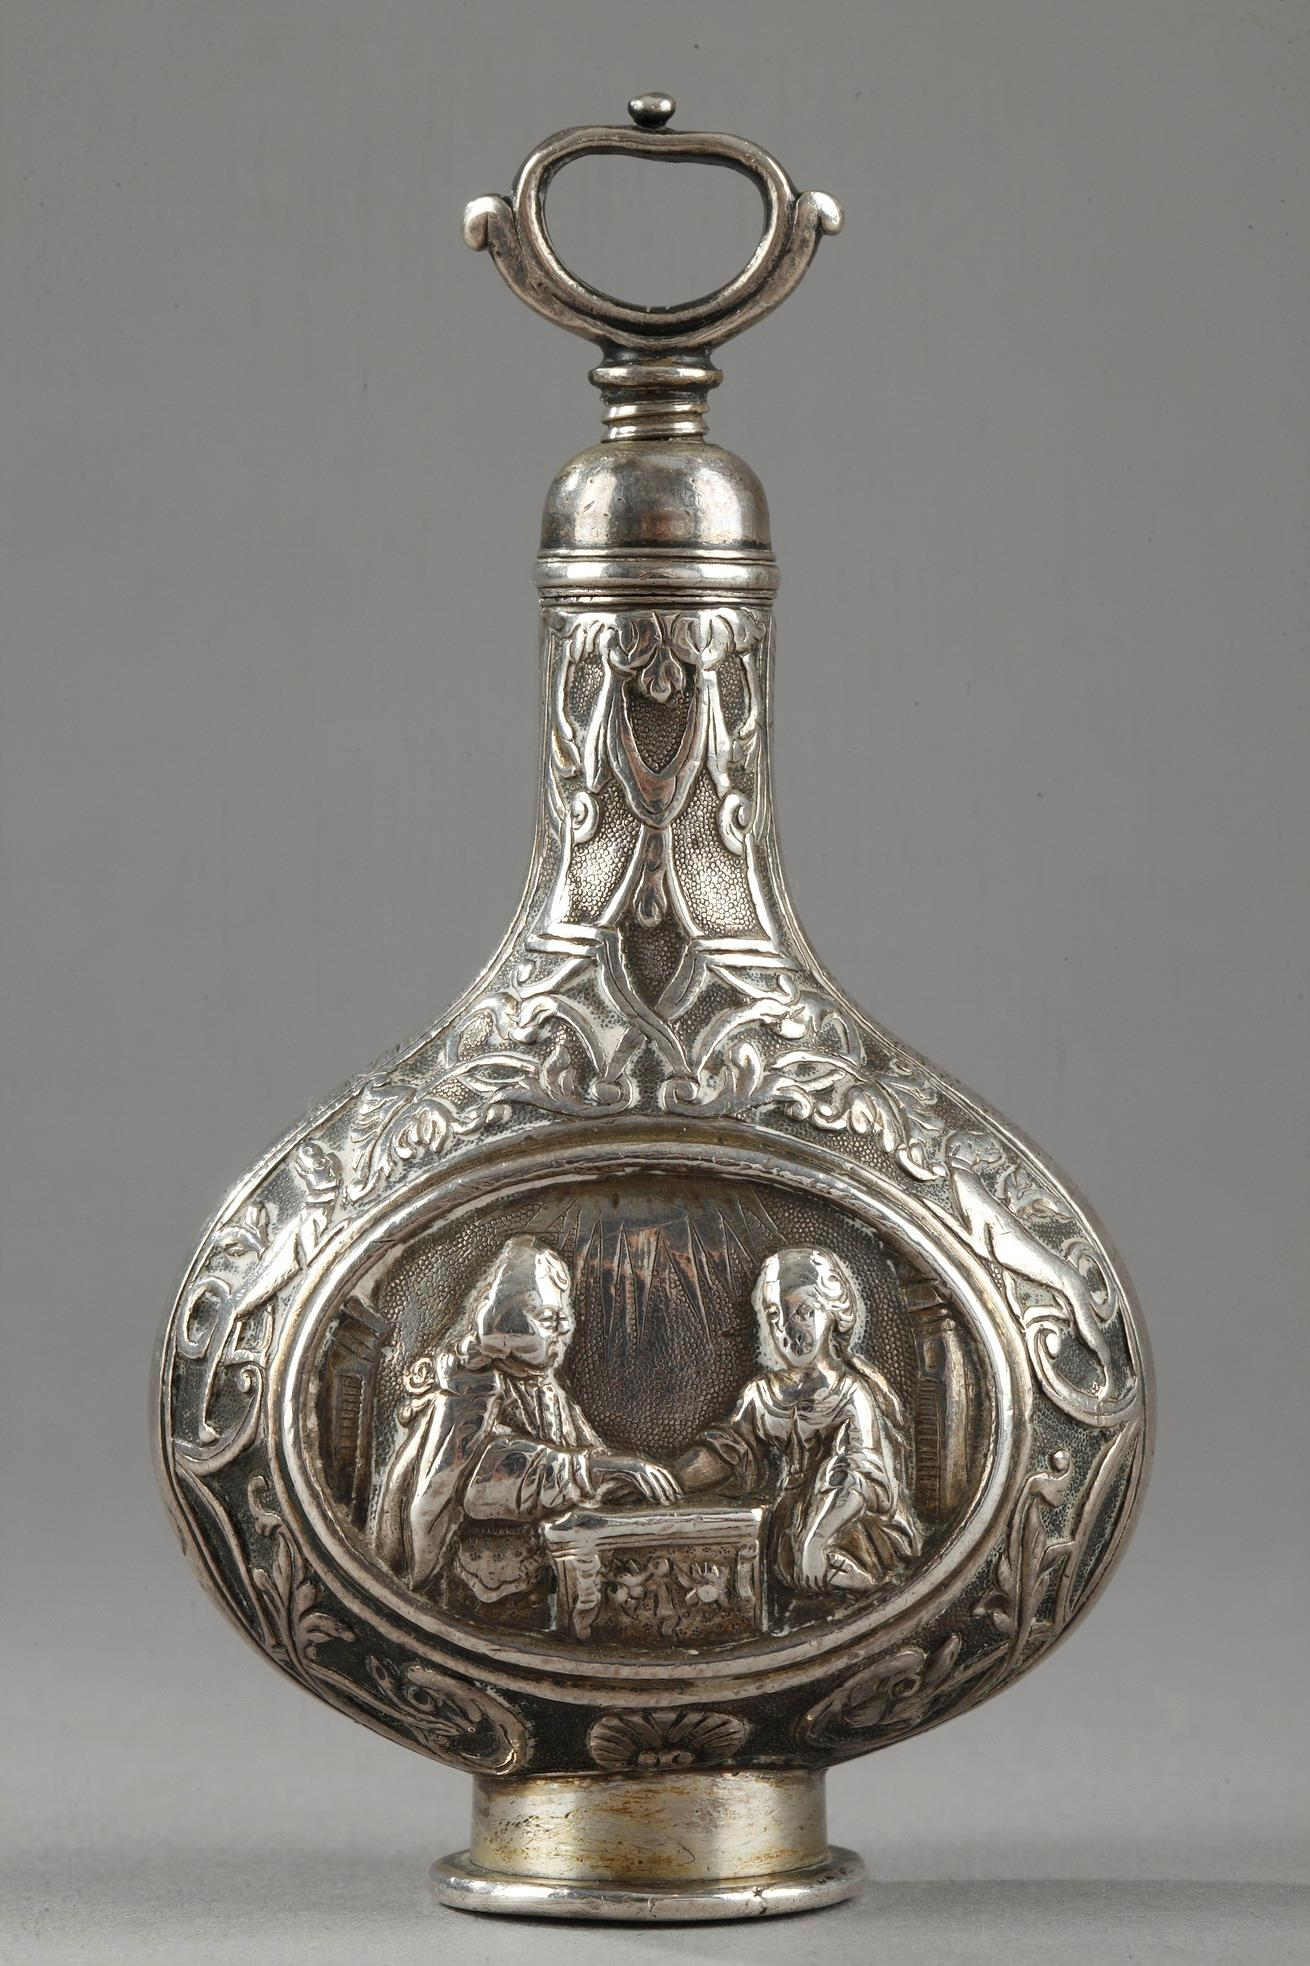 A Silver Scent Bottle in the Shape of a Pilgrim Flask. German 18th century.